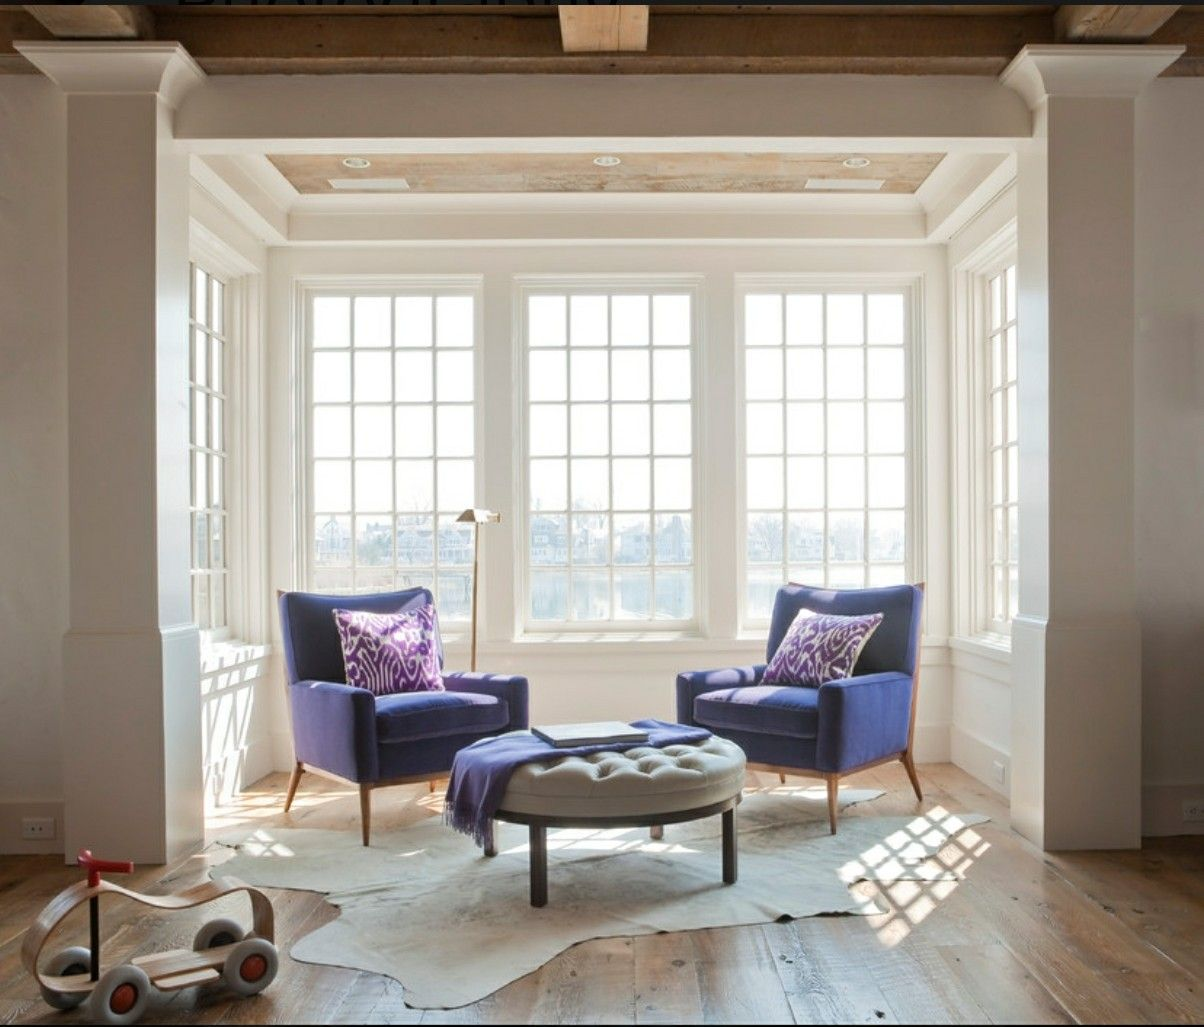 Awesome Curtain Ideas For Bay Window Living Room Eclectic: Coastal Beach House In Old Greenwich With Gorgeous Windows